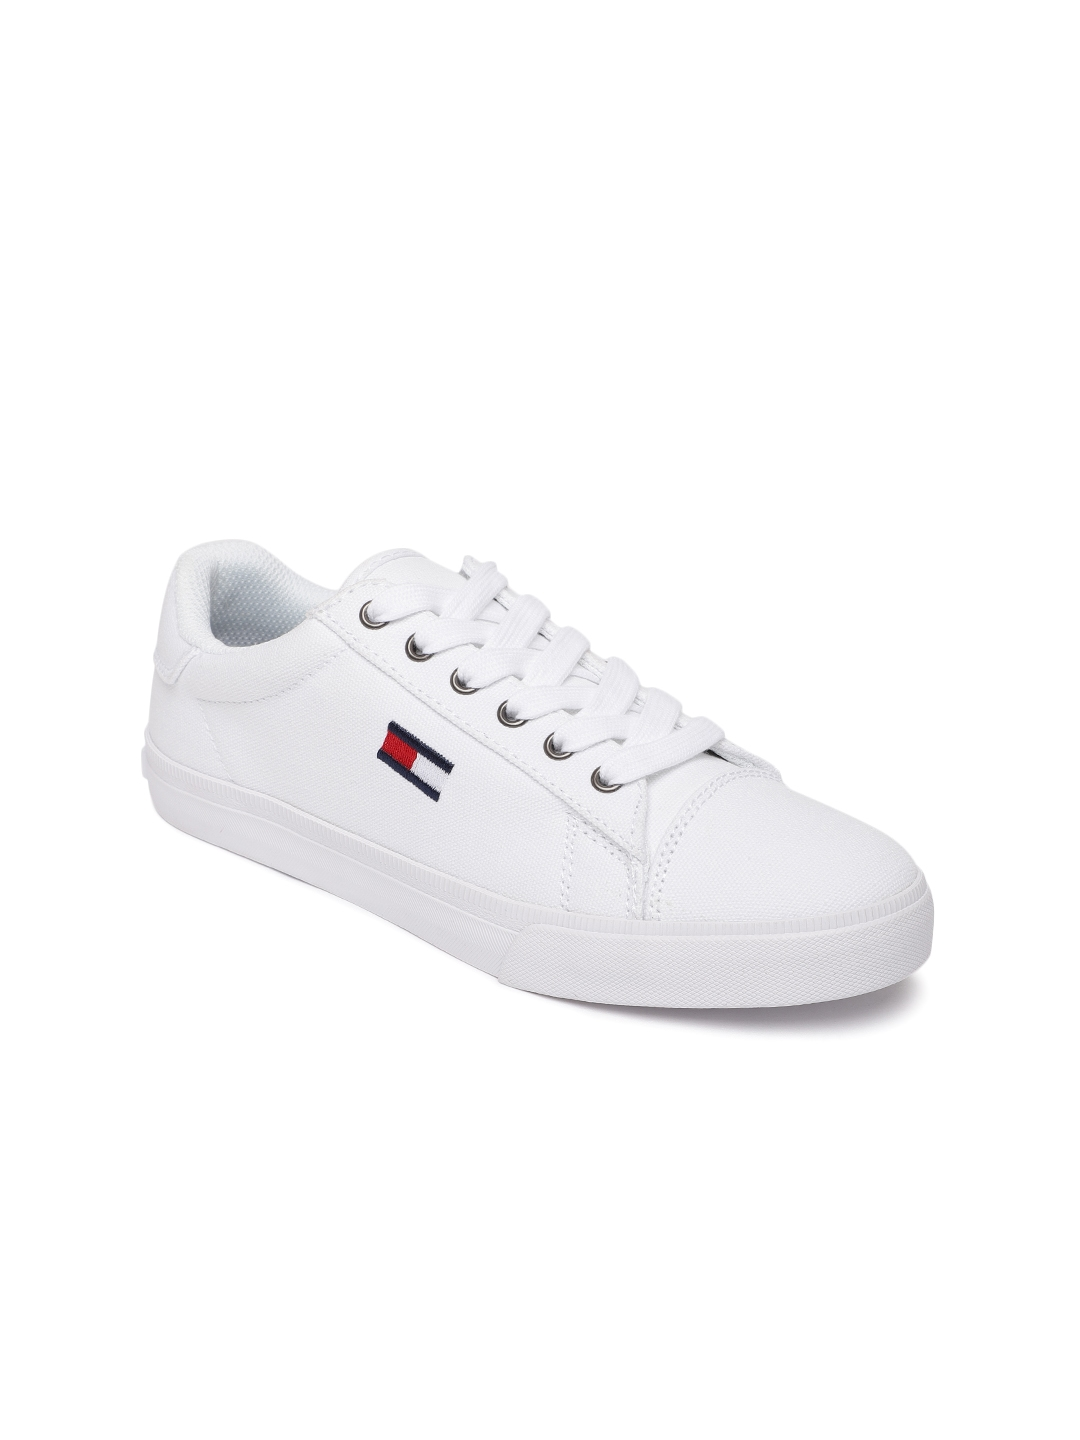 8c288b070 Buy Tommy Hilfiger Women White Lava A Sneakers - Casual Shoes for ...